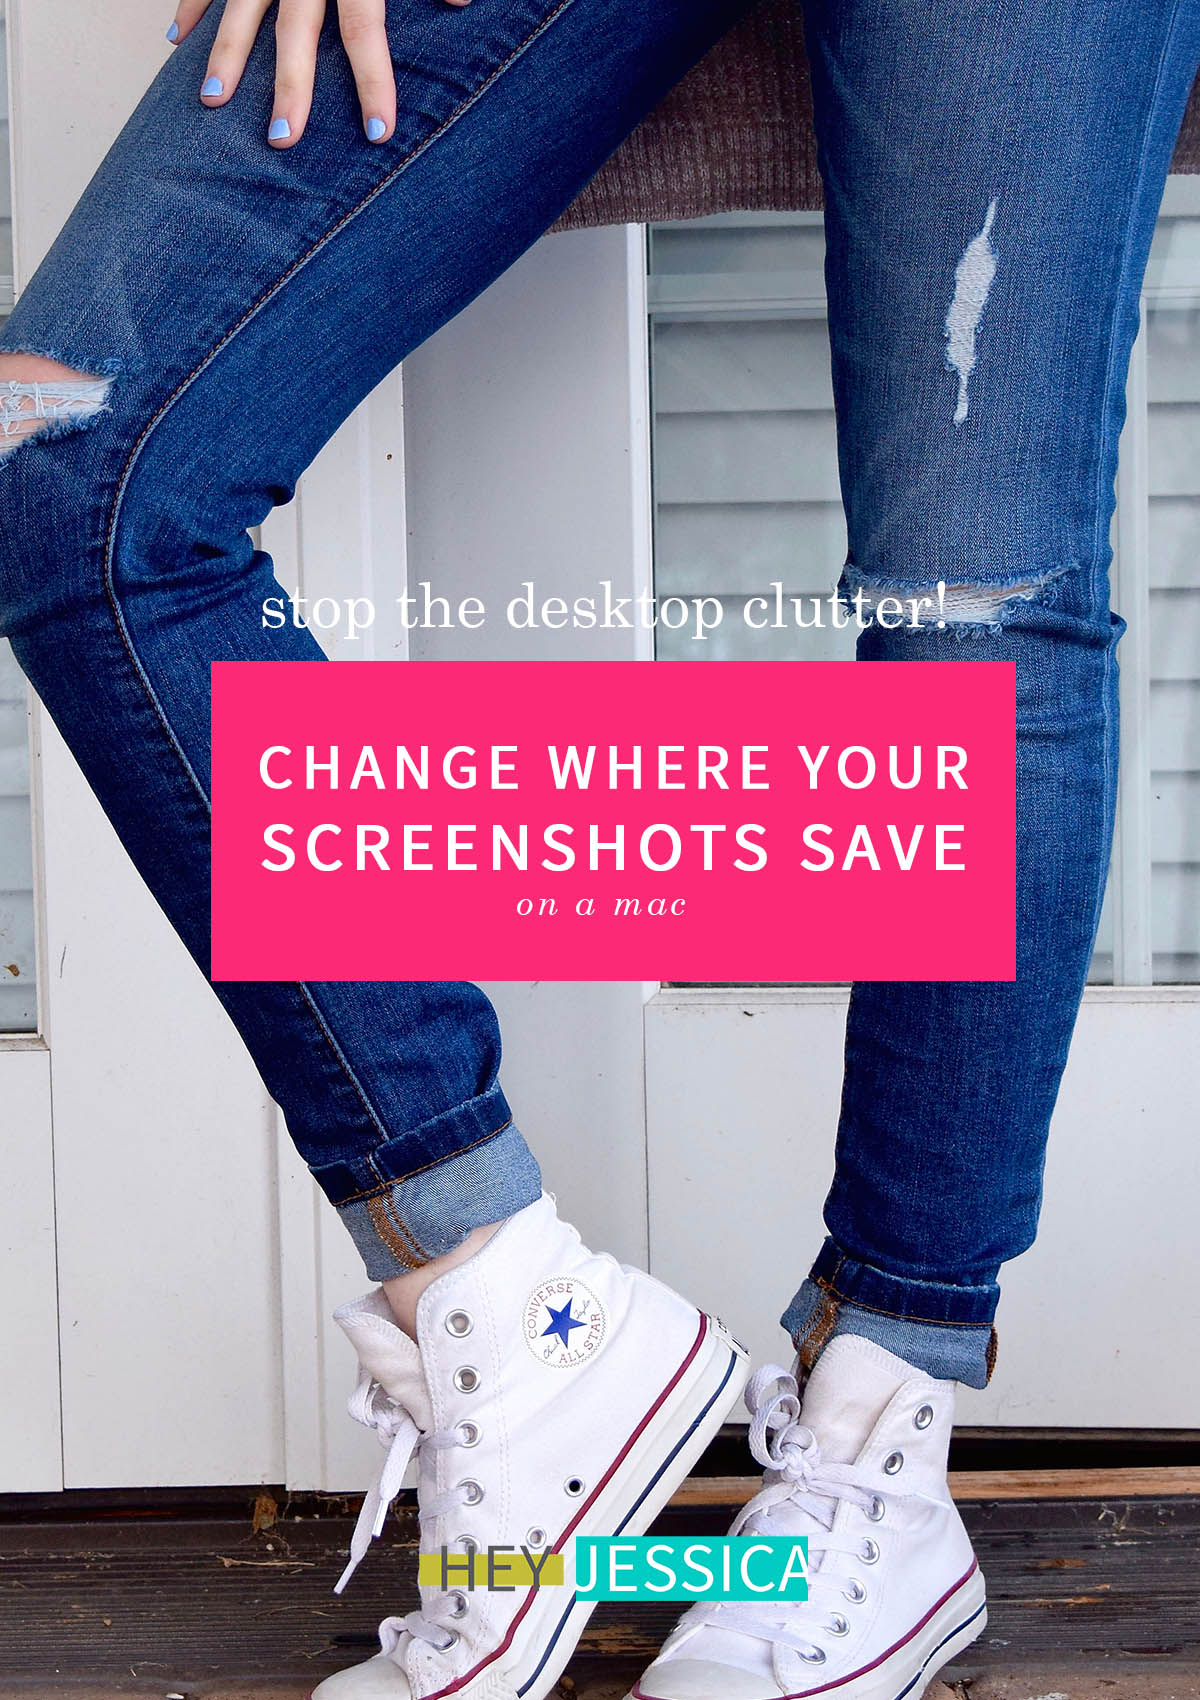 Change where screenshots save | Hey Jessica | Free Content on the Blog